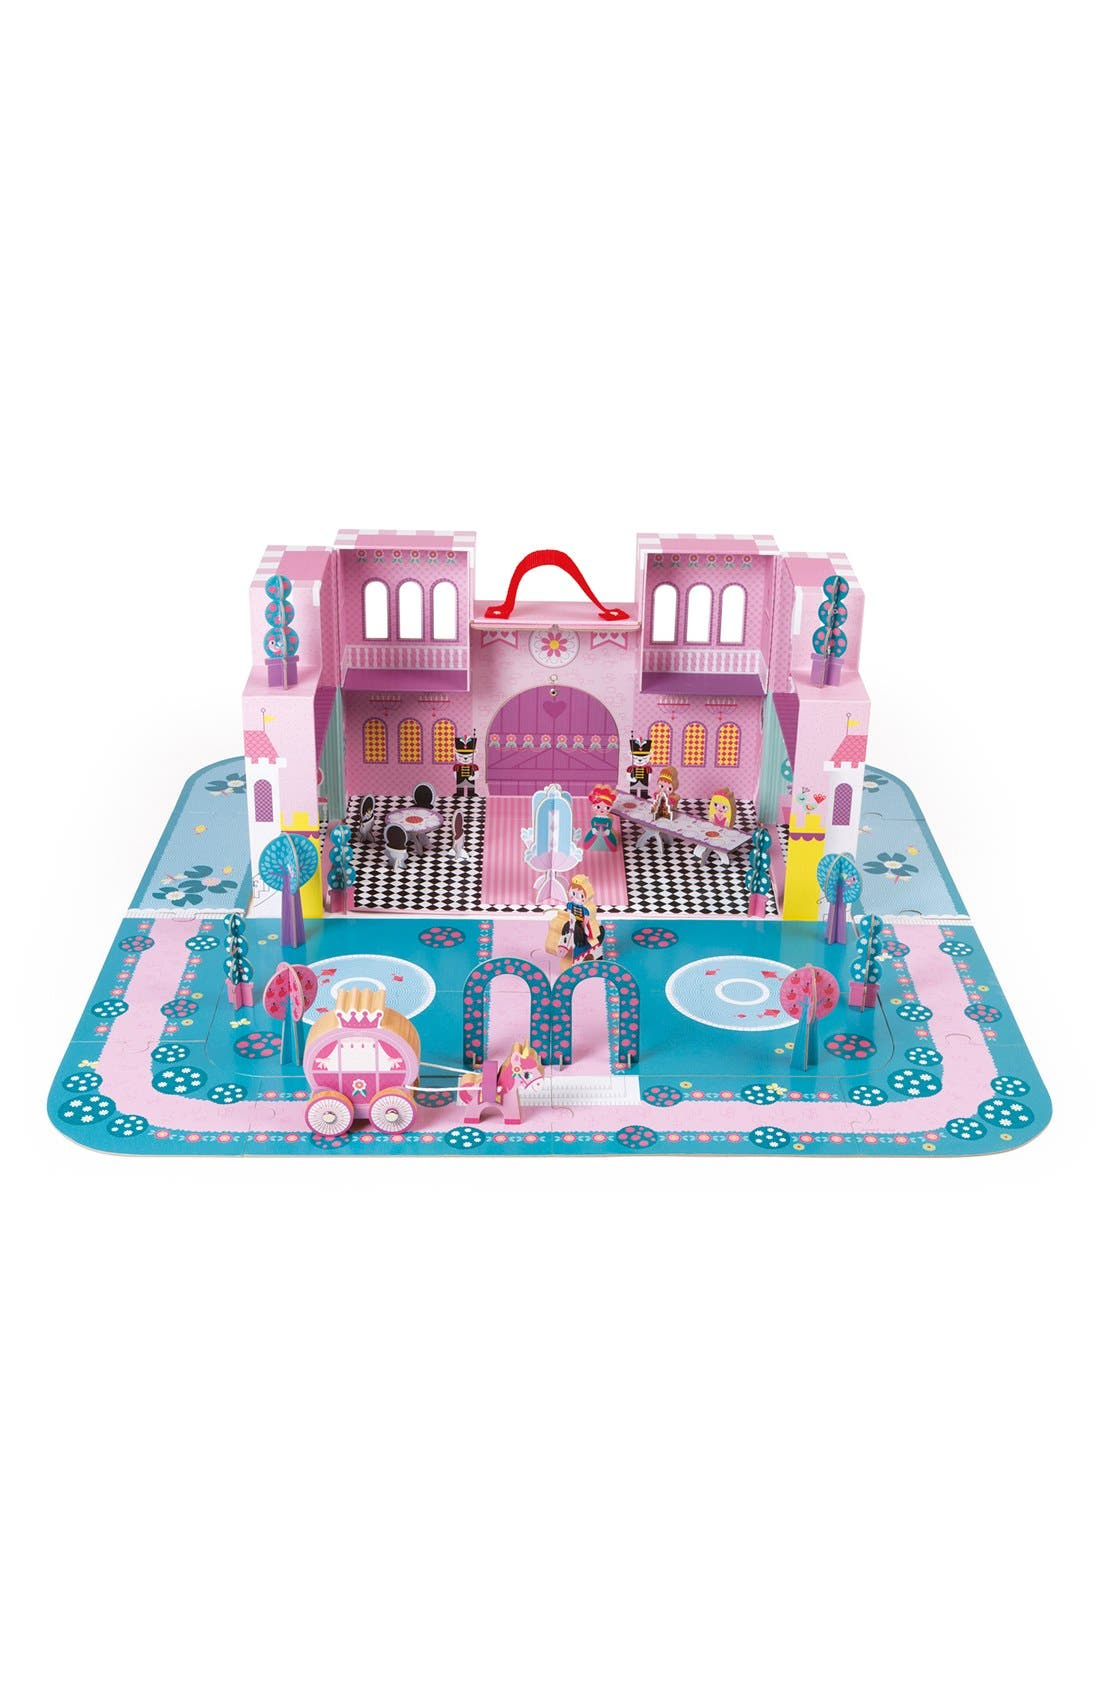 'Princess Palace' Play Set,                             Alternate thumbnail 3, color,                             960